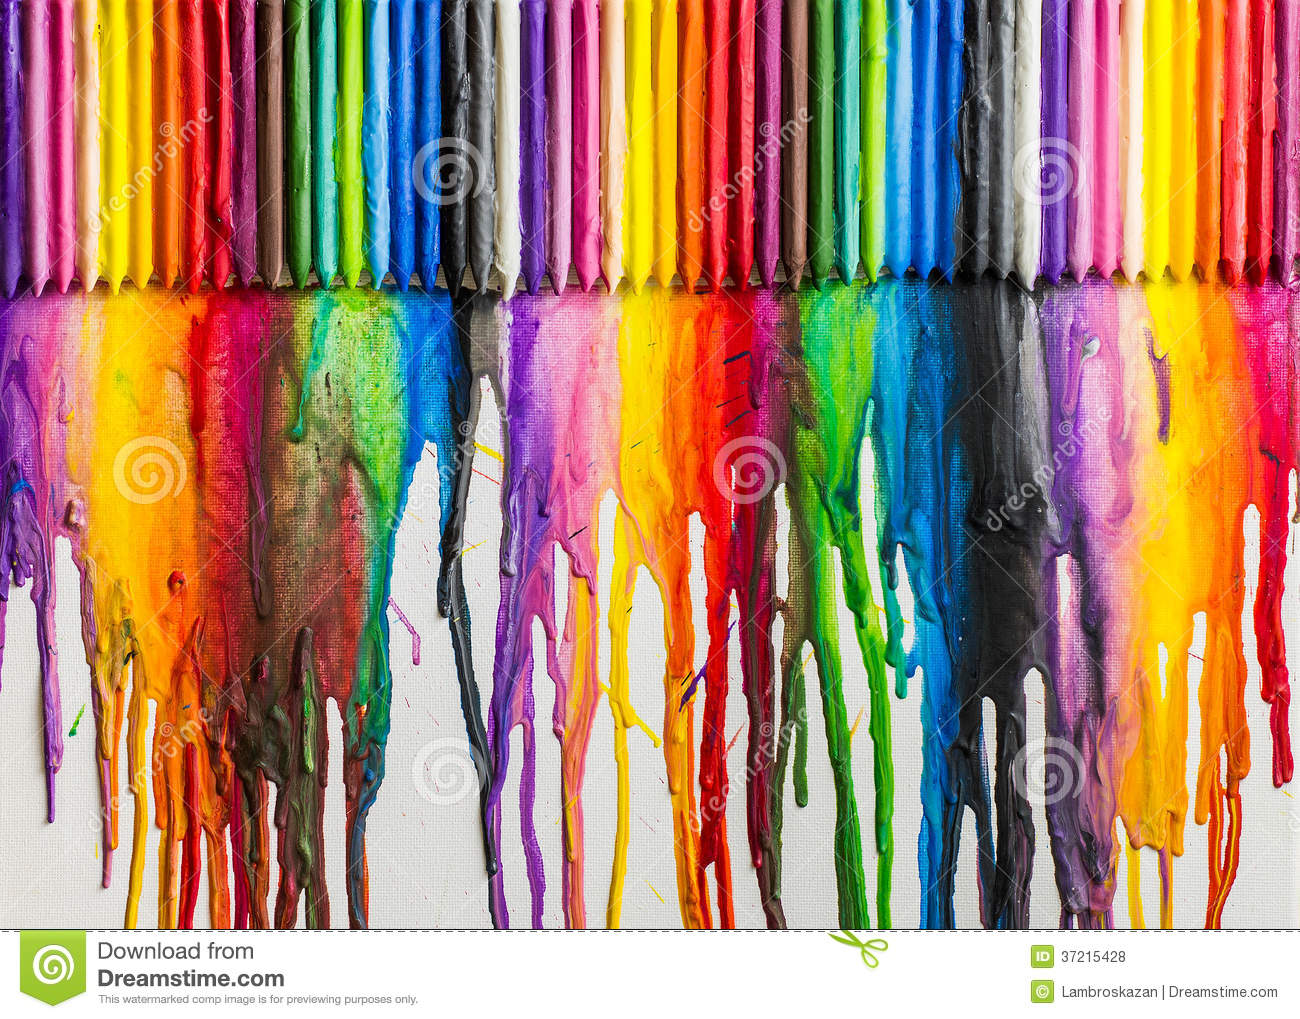 Melted Crayons Colorful Abstract Royalty Free Stock Photos ...